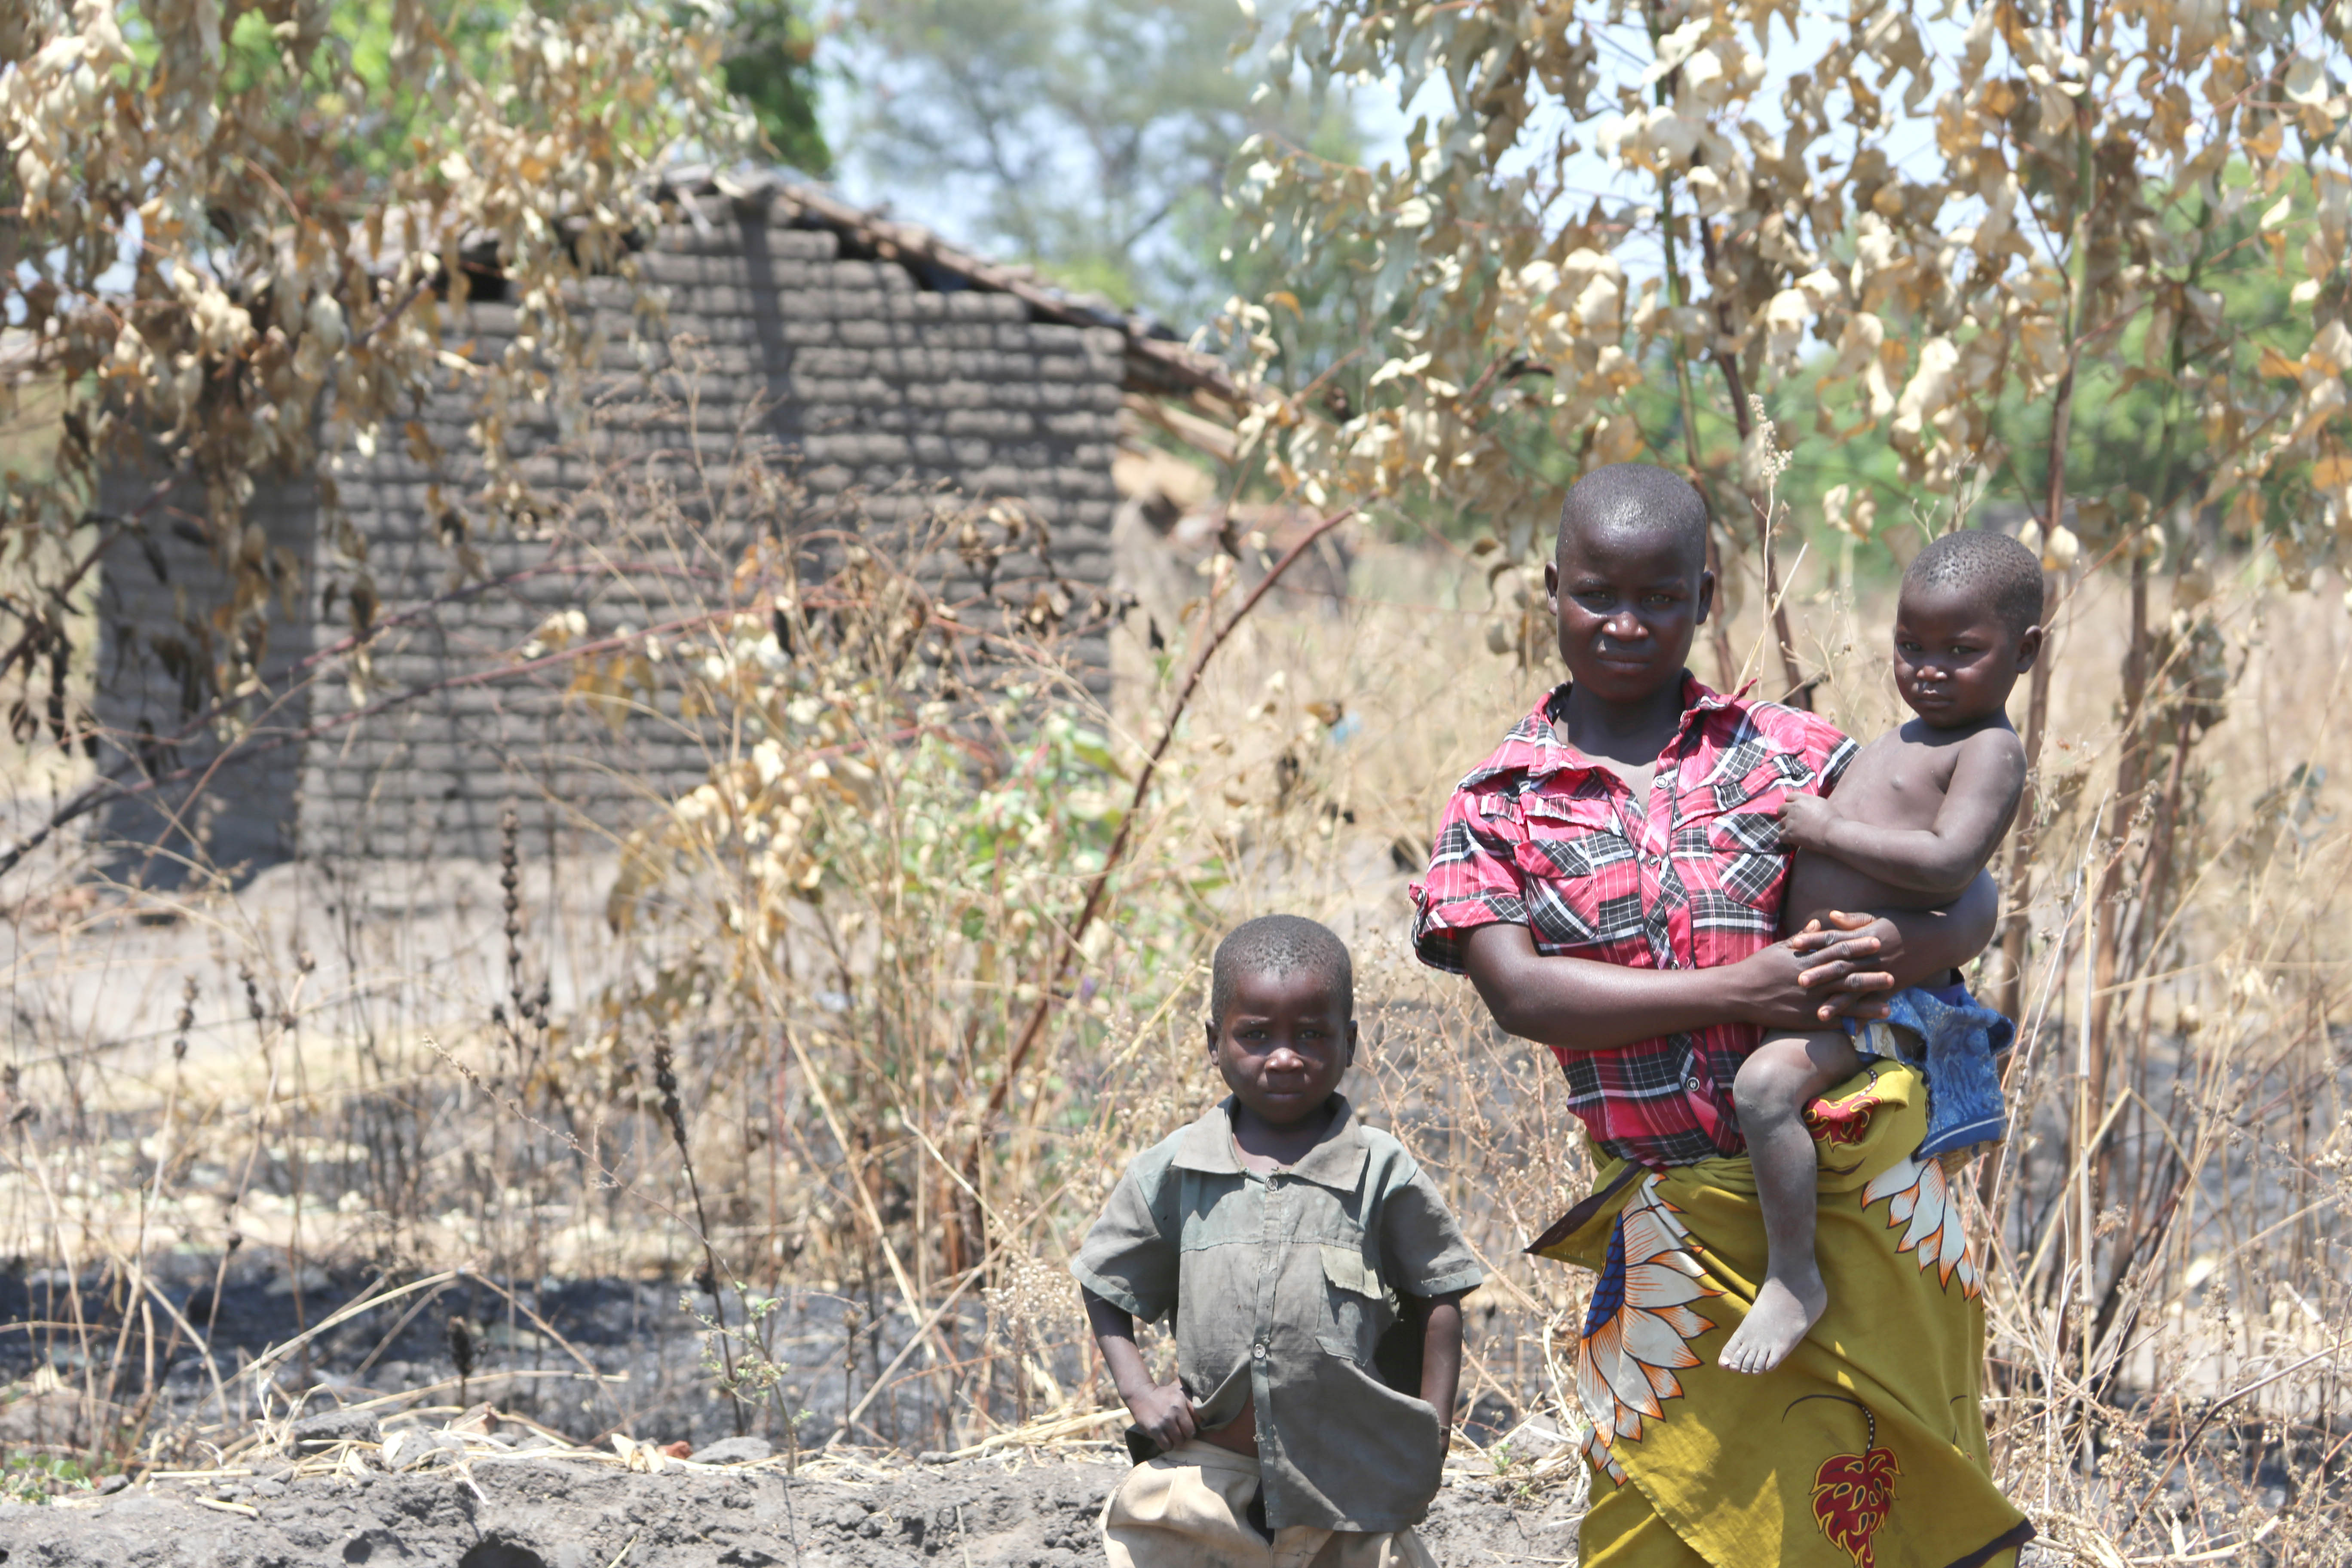 Alefa with her two children in Malawi